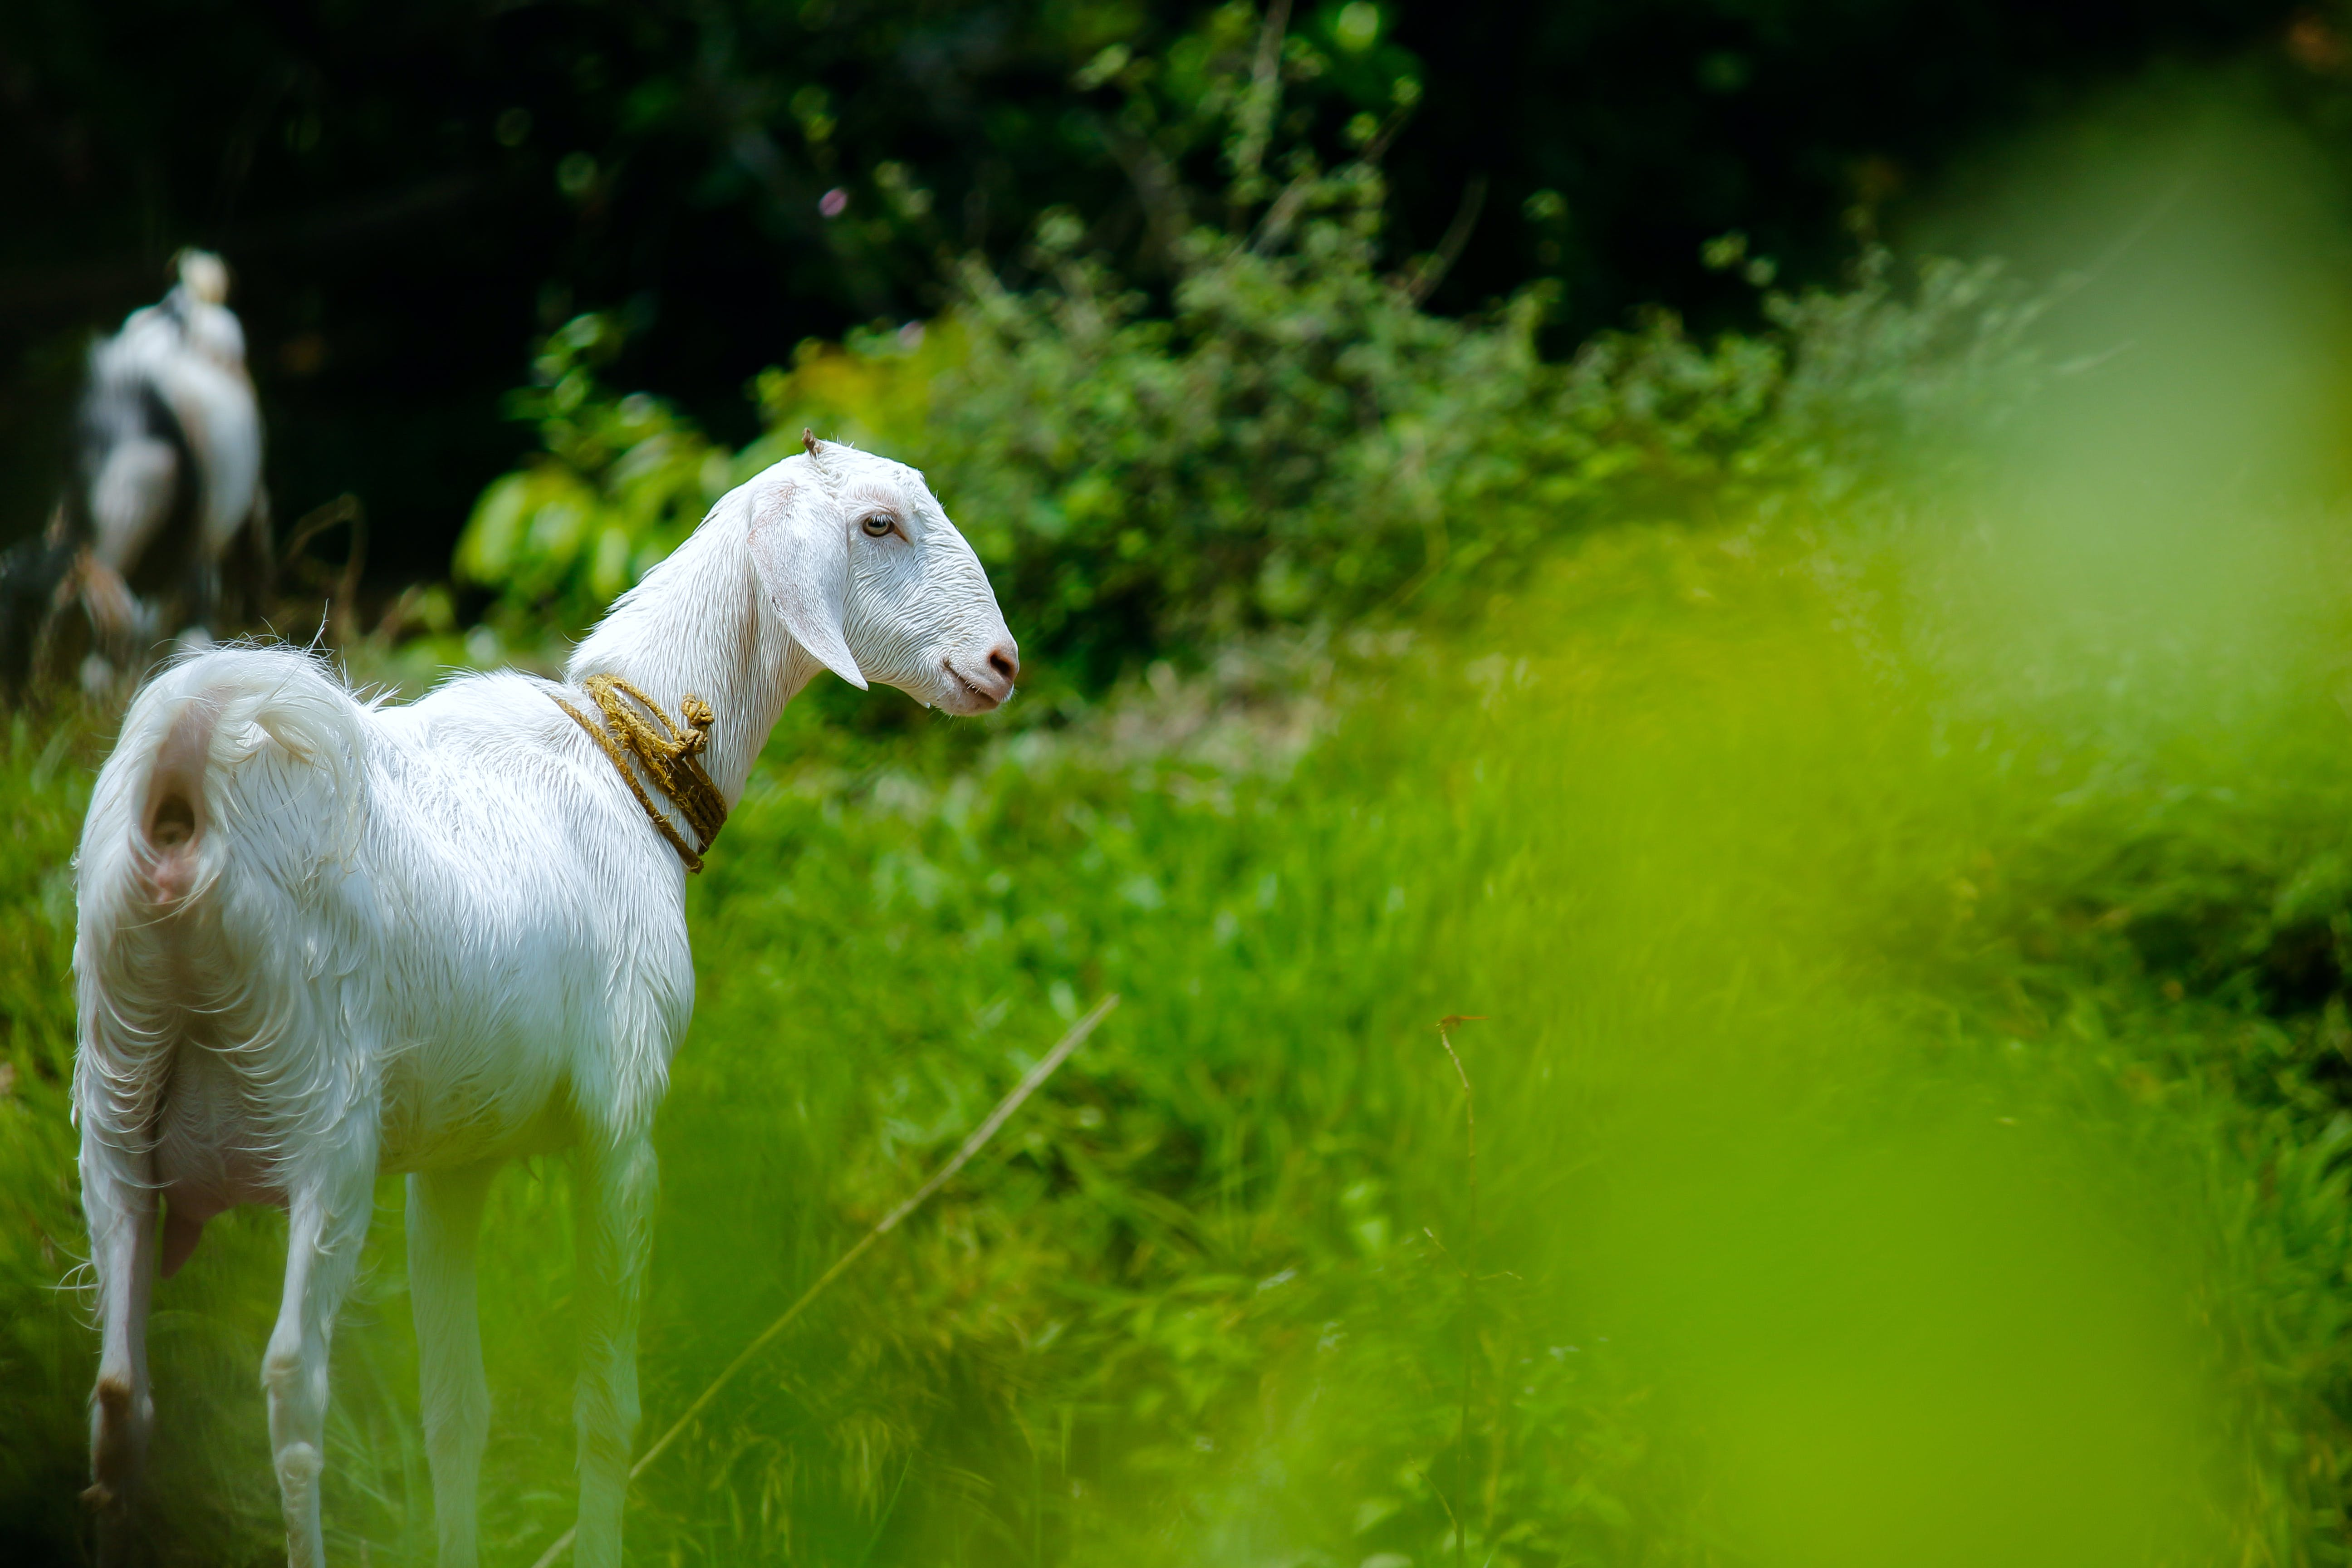 White Goat in Grass Field